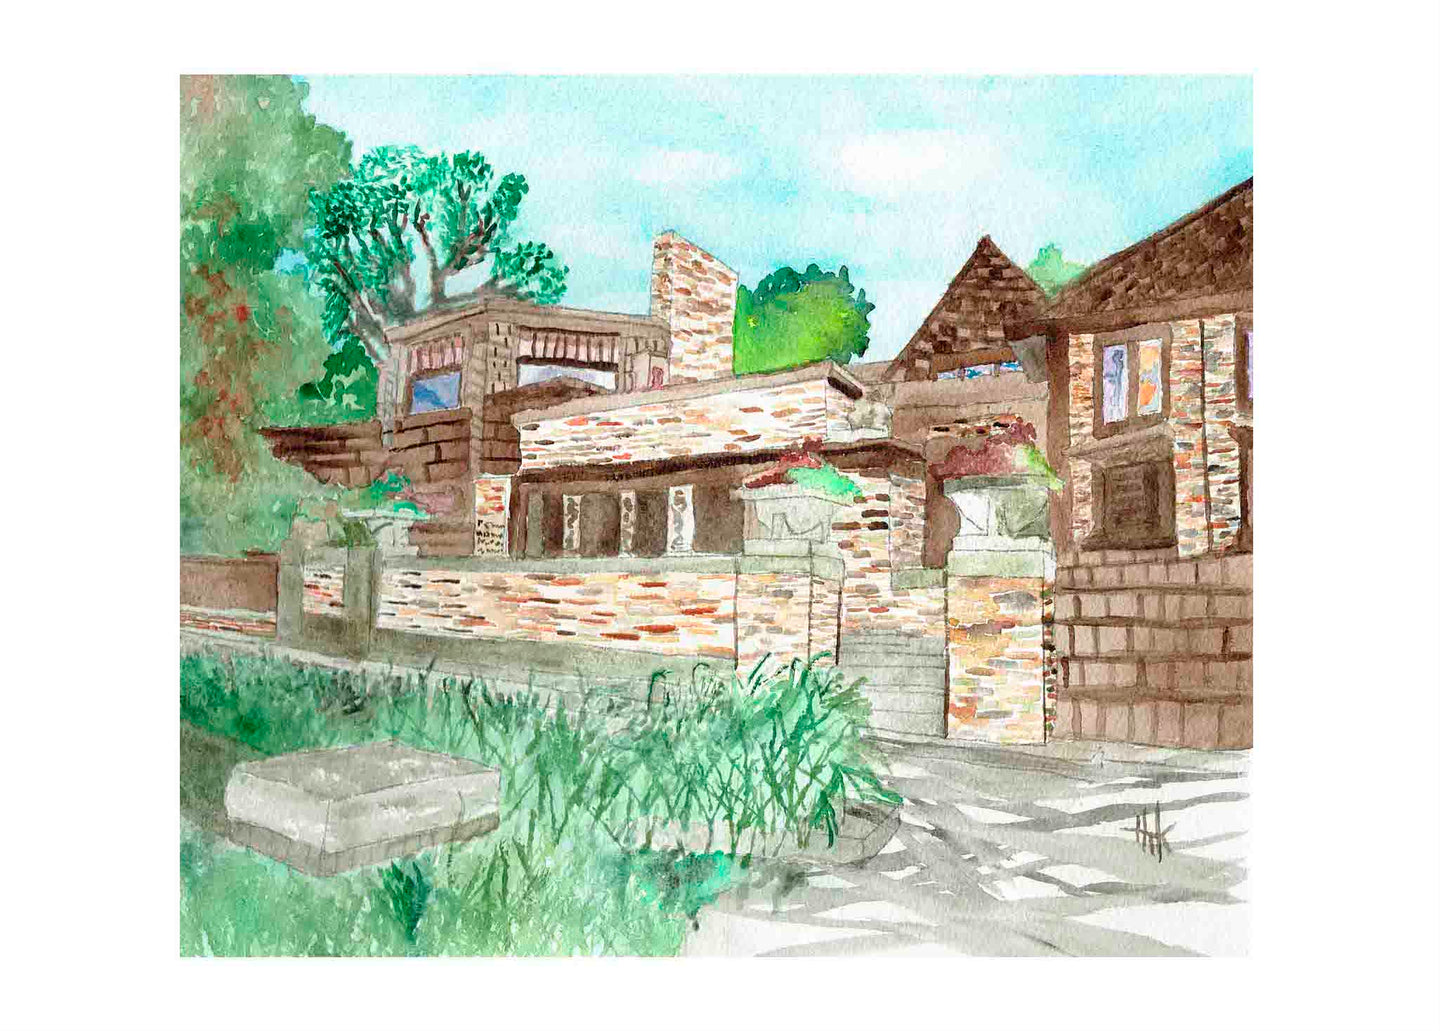 FRANK LLOYD WRIGHT HOME & STUDIO - CARDS